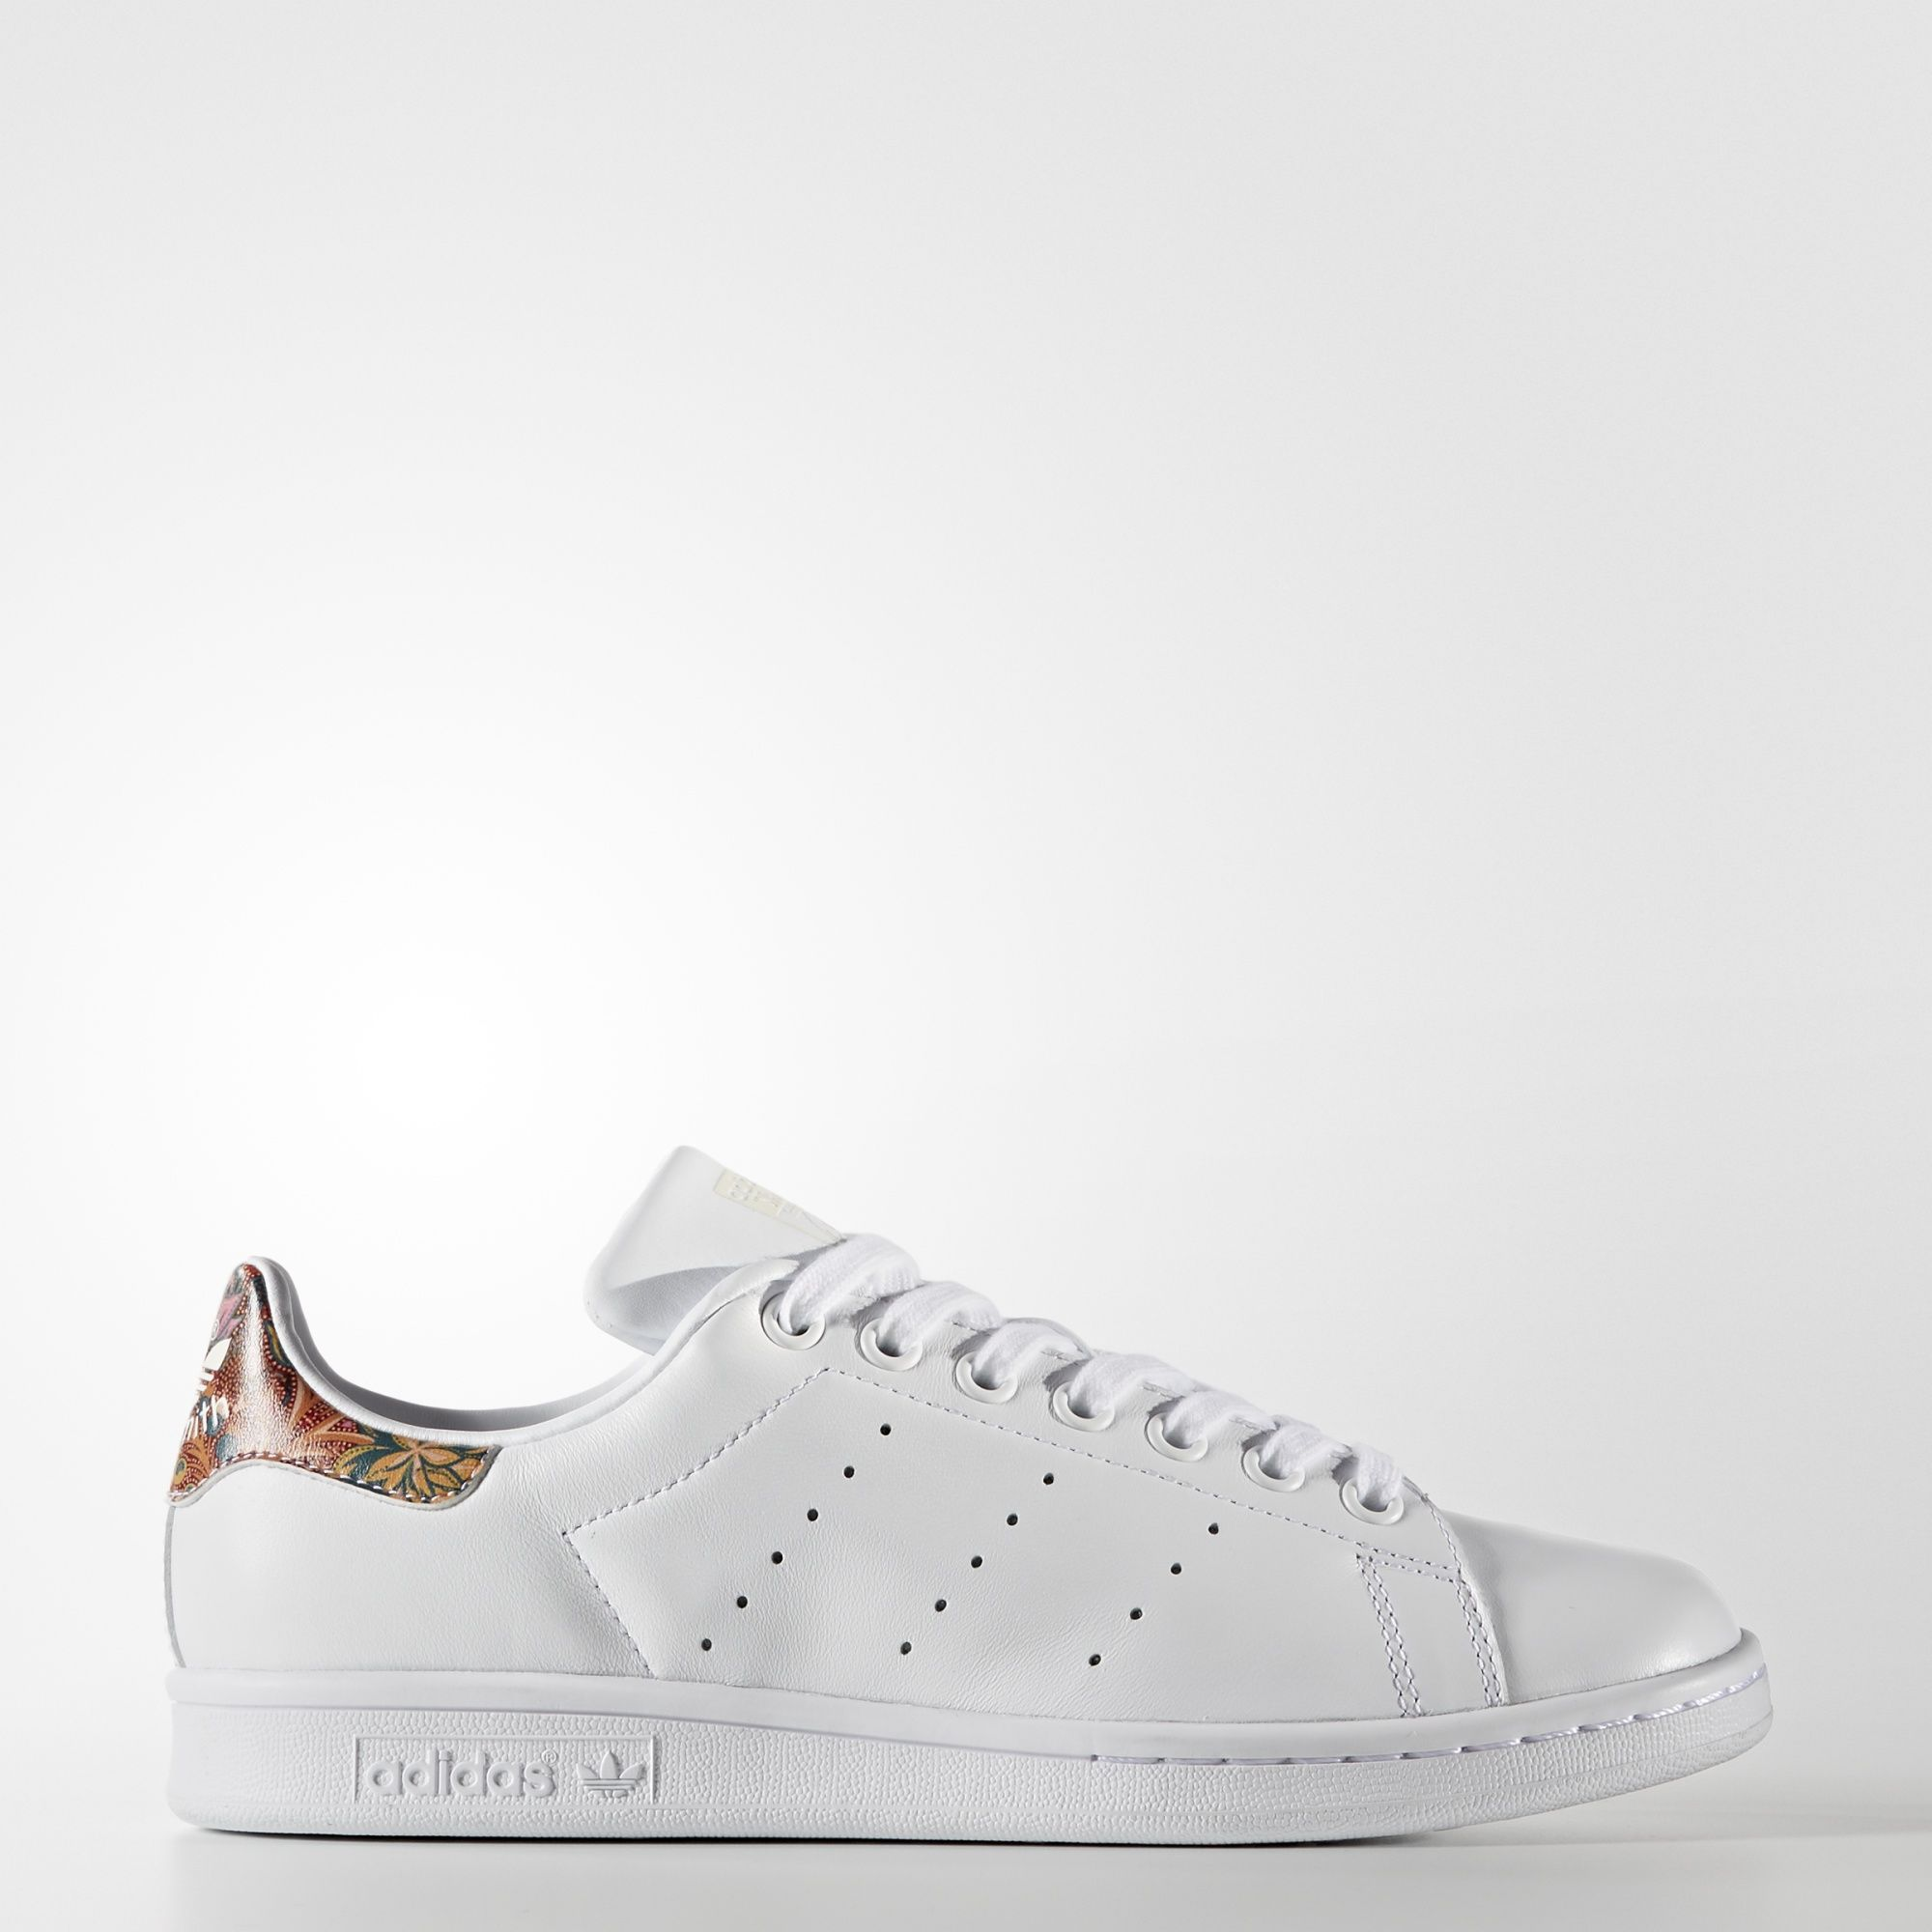 adidas - Stan Smith Shoes w/ Balinese heel patch